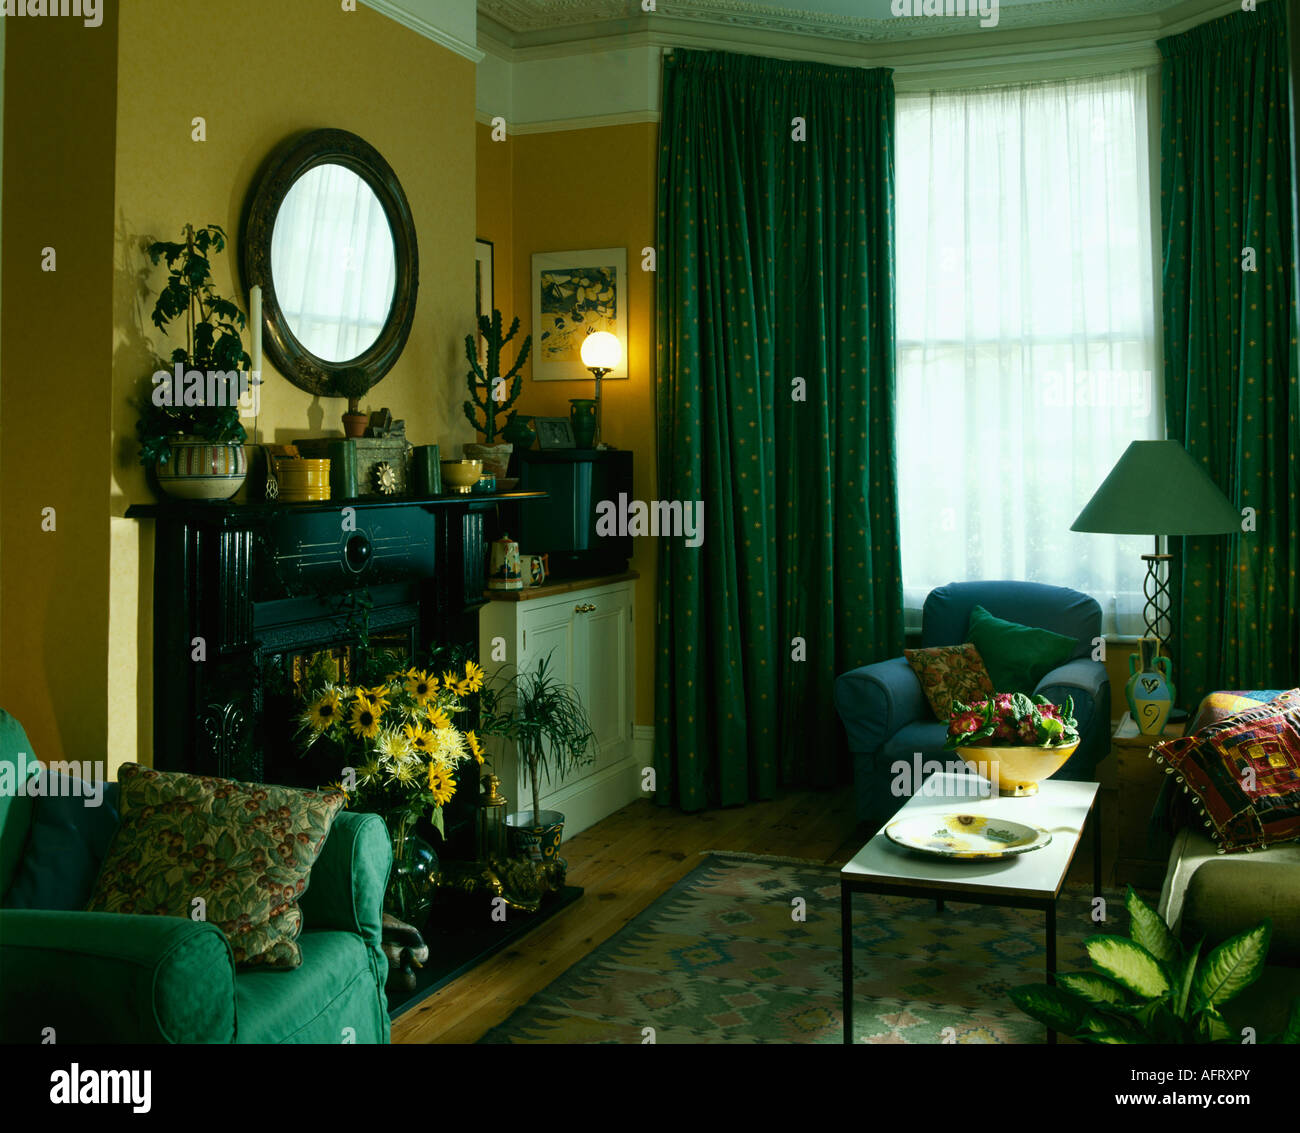 Green Curtains In Yellow Nineties Living Room With Yellow